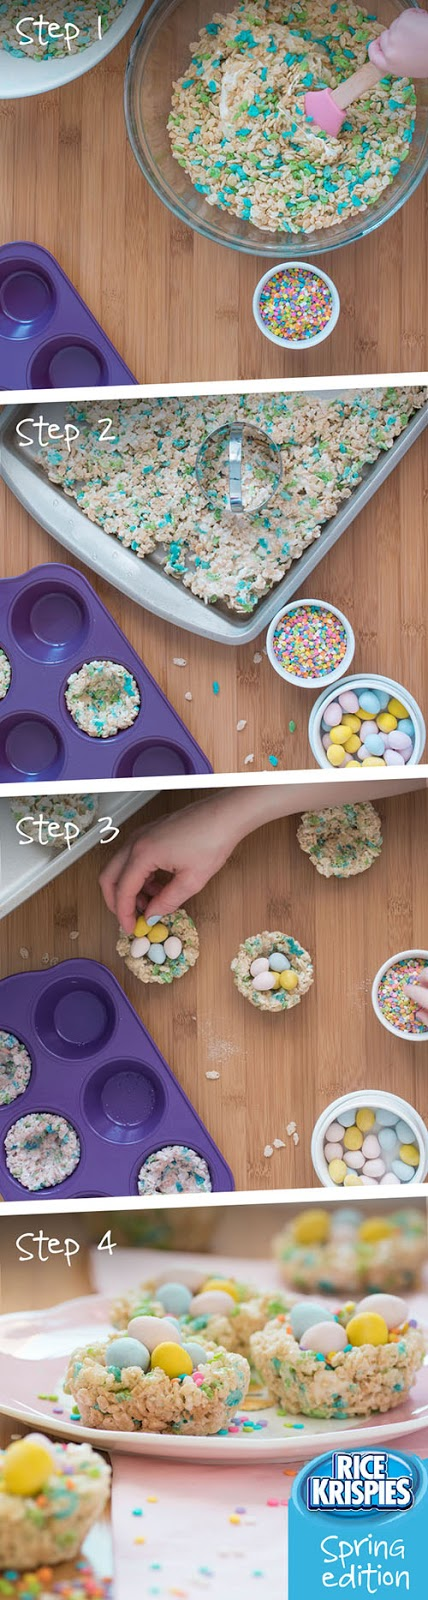 Happy Easter with #RiceKrispiesSpring ~  #Kellogger